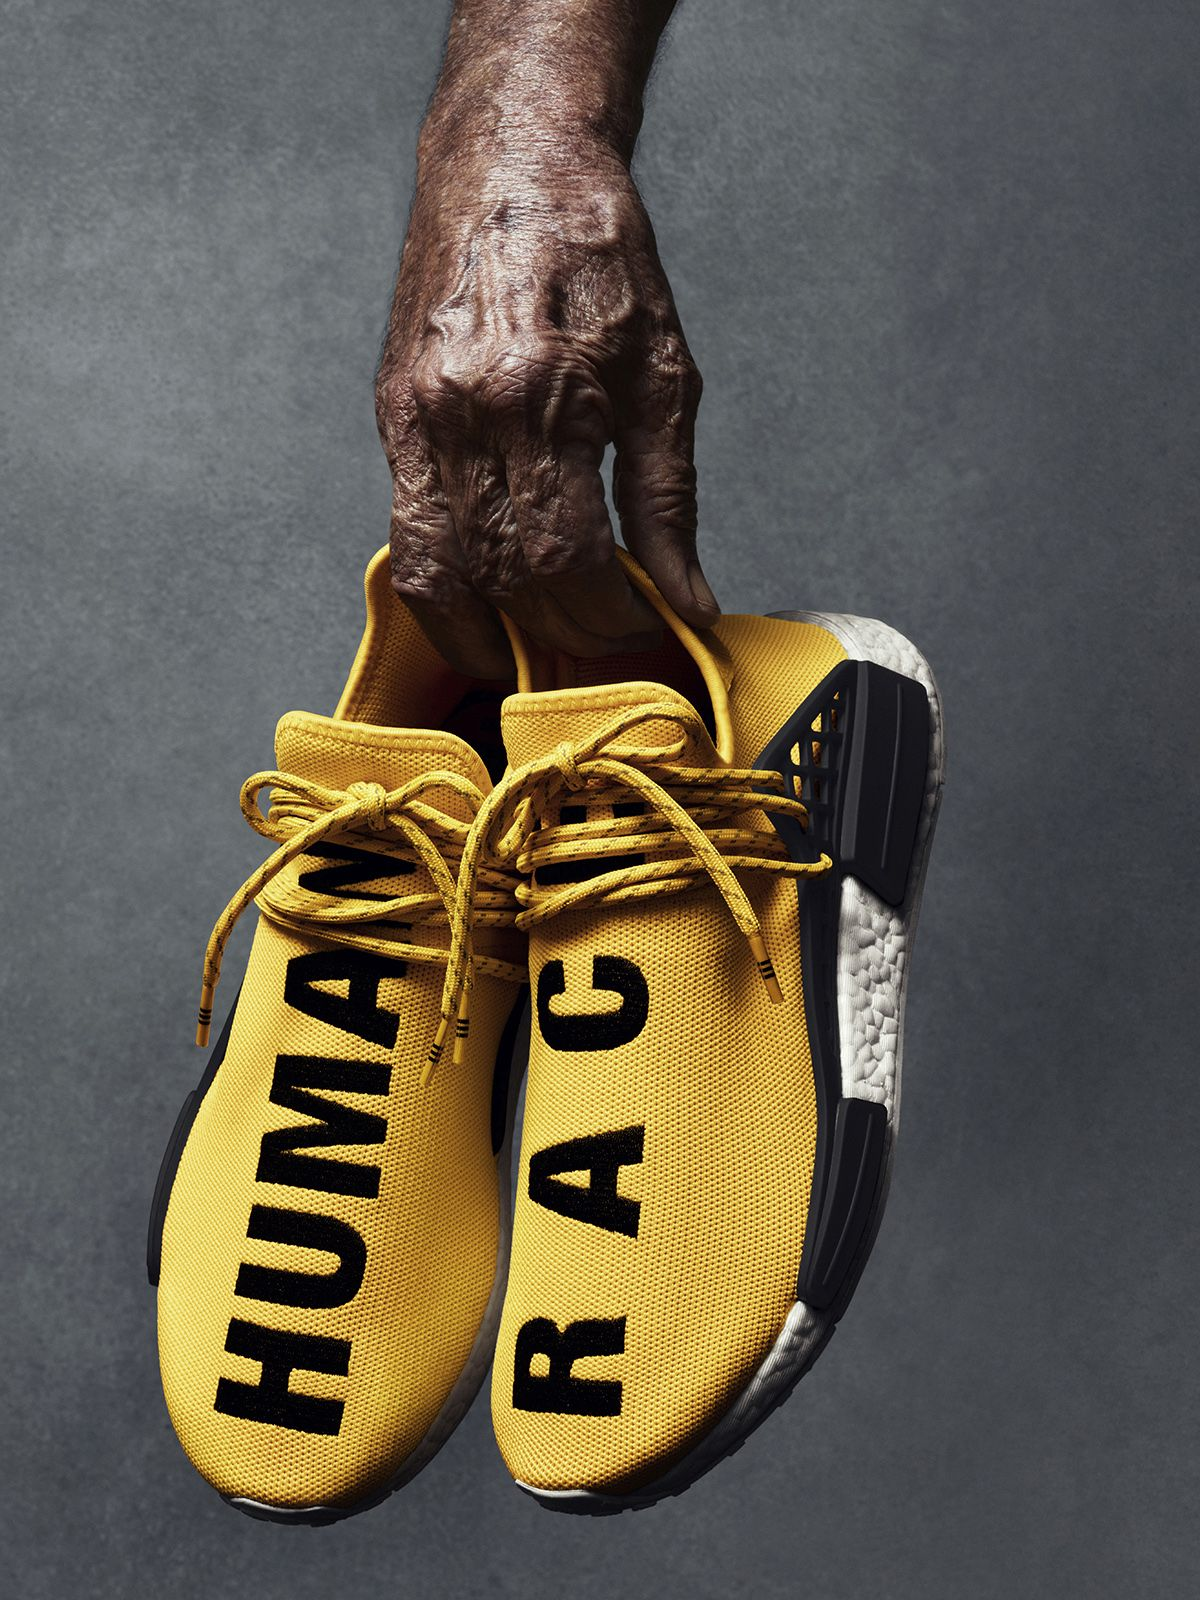 adidas X Pharrell Williams HU Human Race NMD Nomad Sz 6.5 US